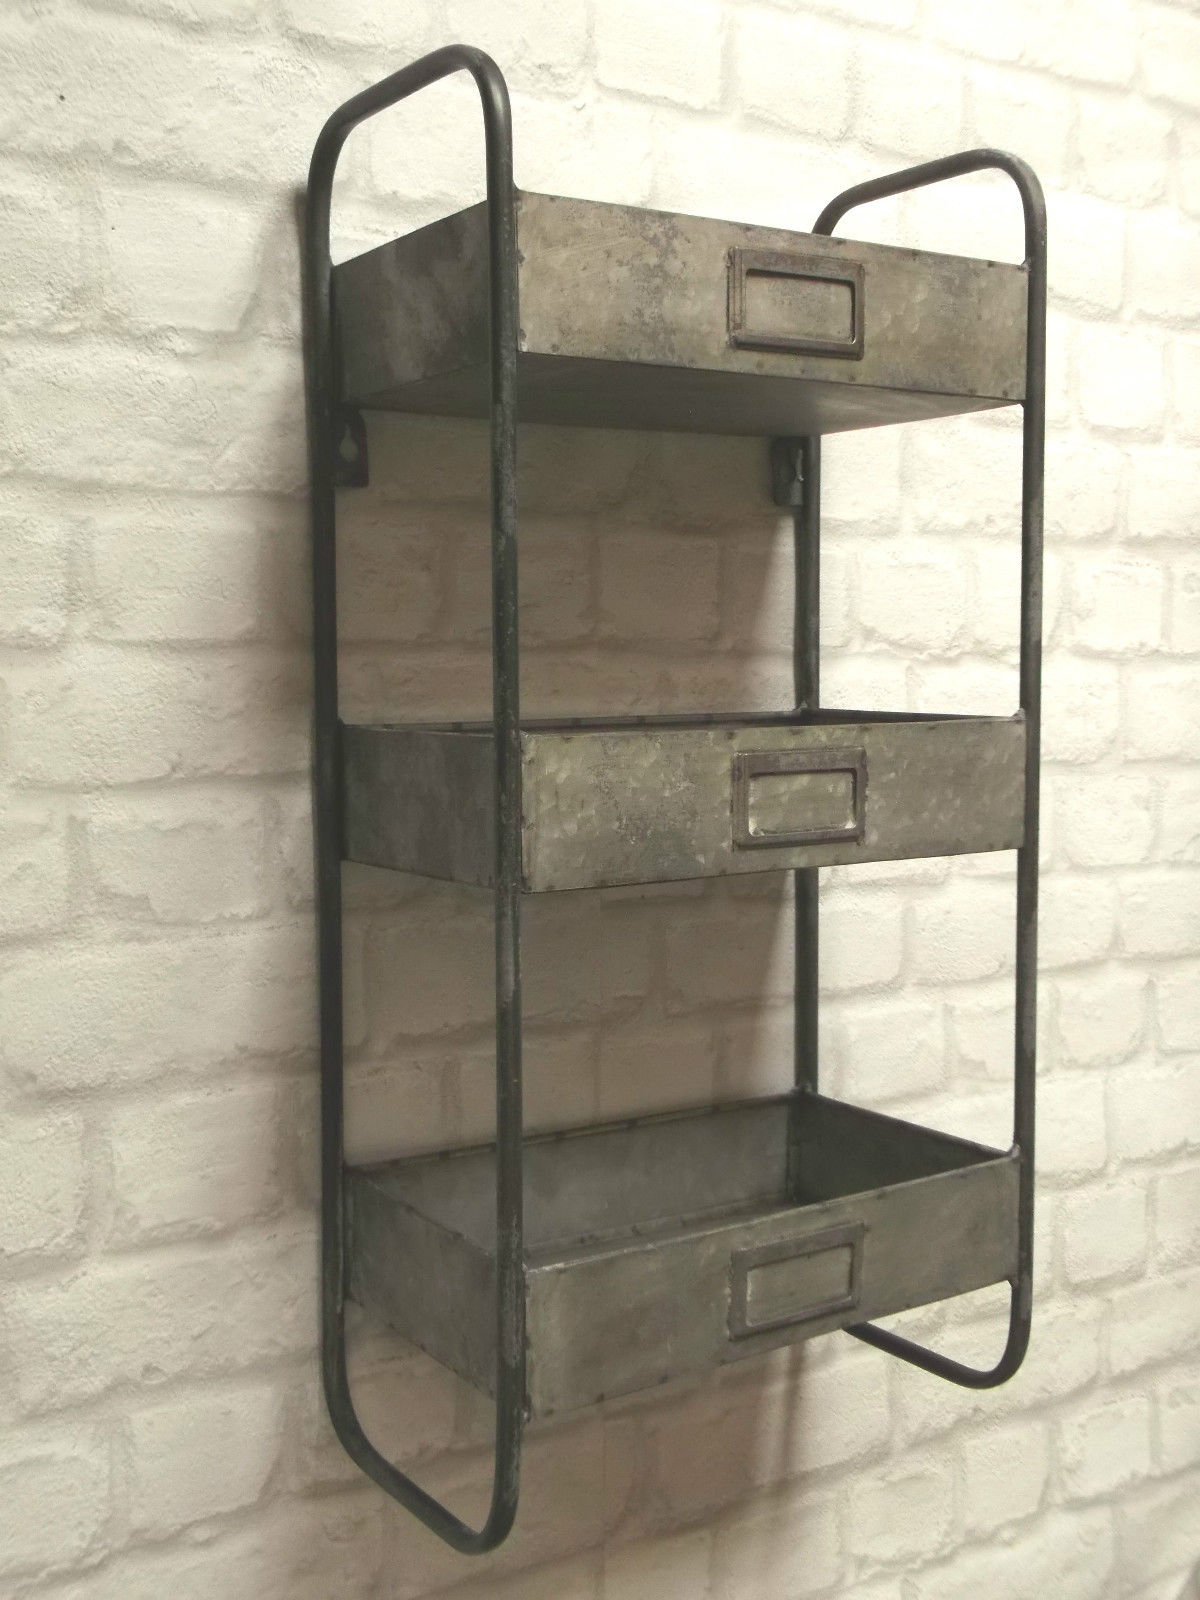 Unusual Clocks Vintage Industrial Style Metal Wall Shelf Unit Storage